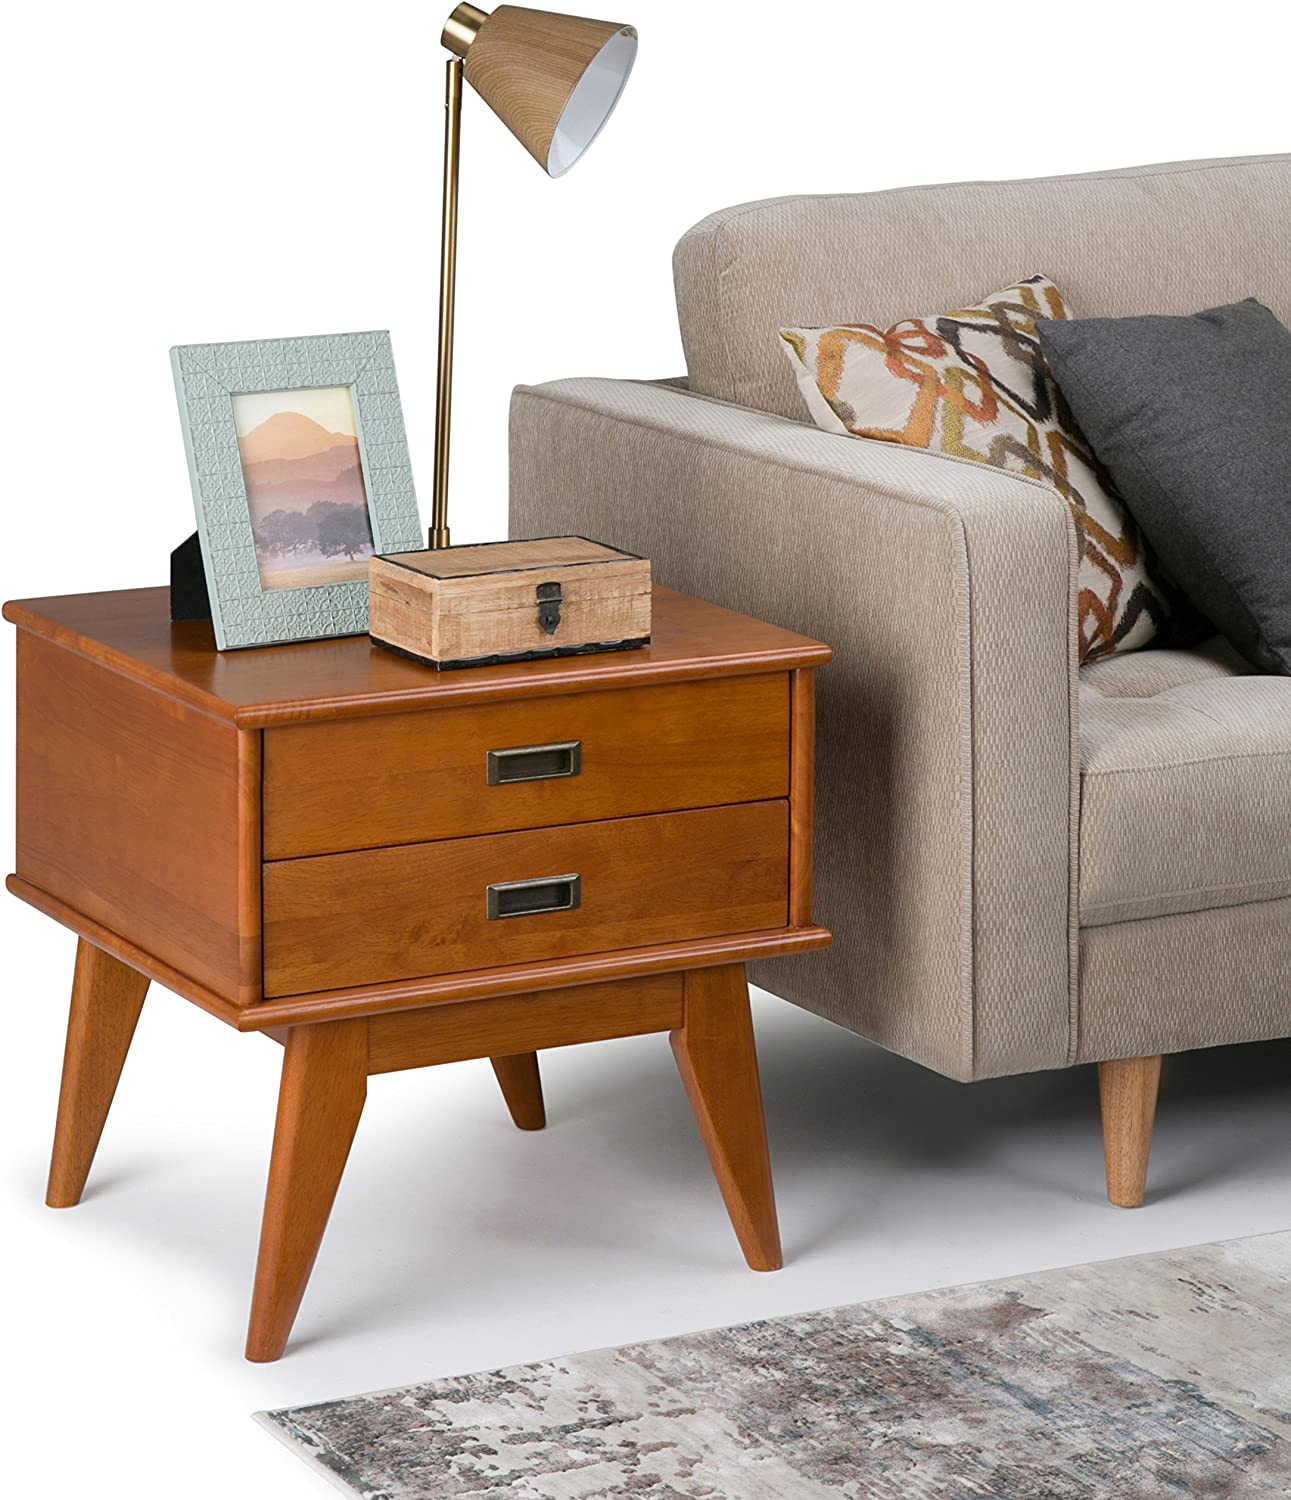 Simpli Home Draper Solid Hardwood 22 inch wide Rectangle Mid Century Modern End Side Table in Teak Brown with Storage, 2 Drawers, for the Living Room and Bedroom